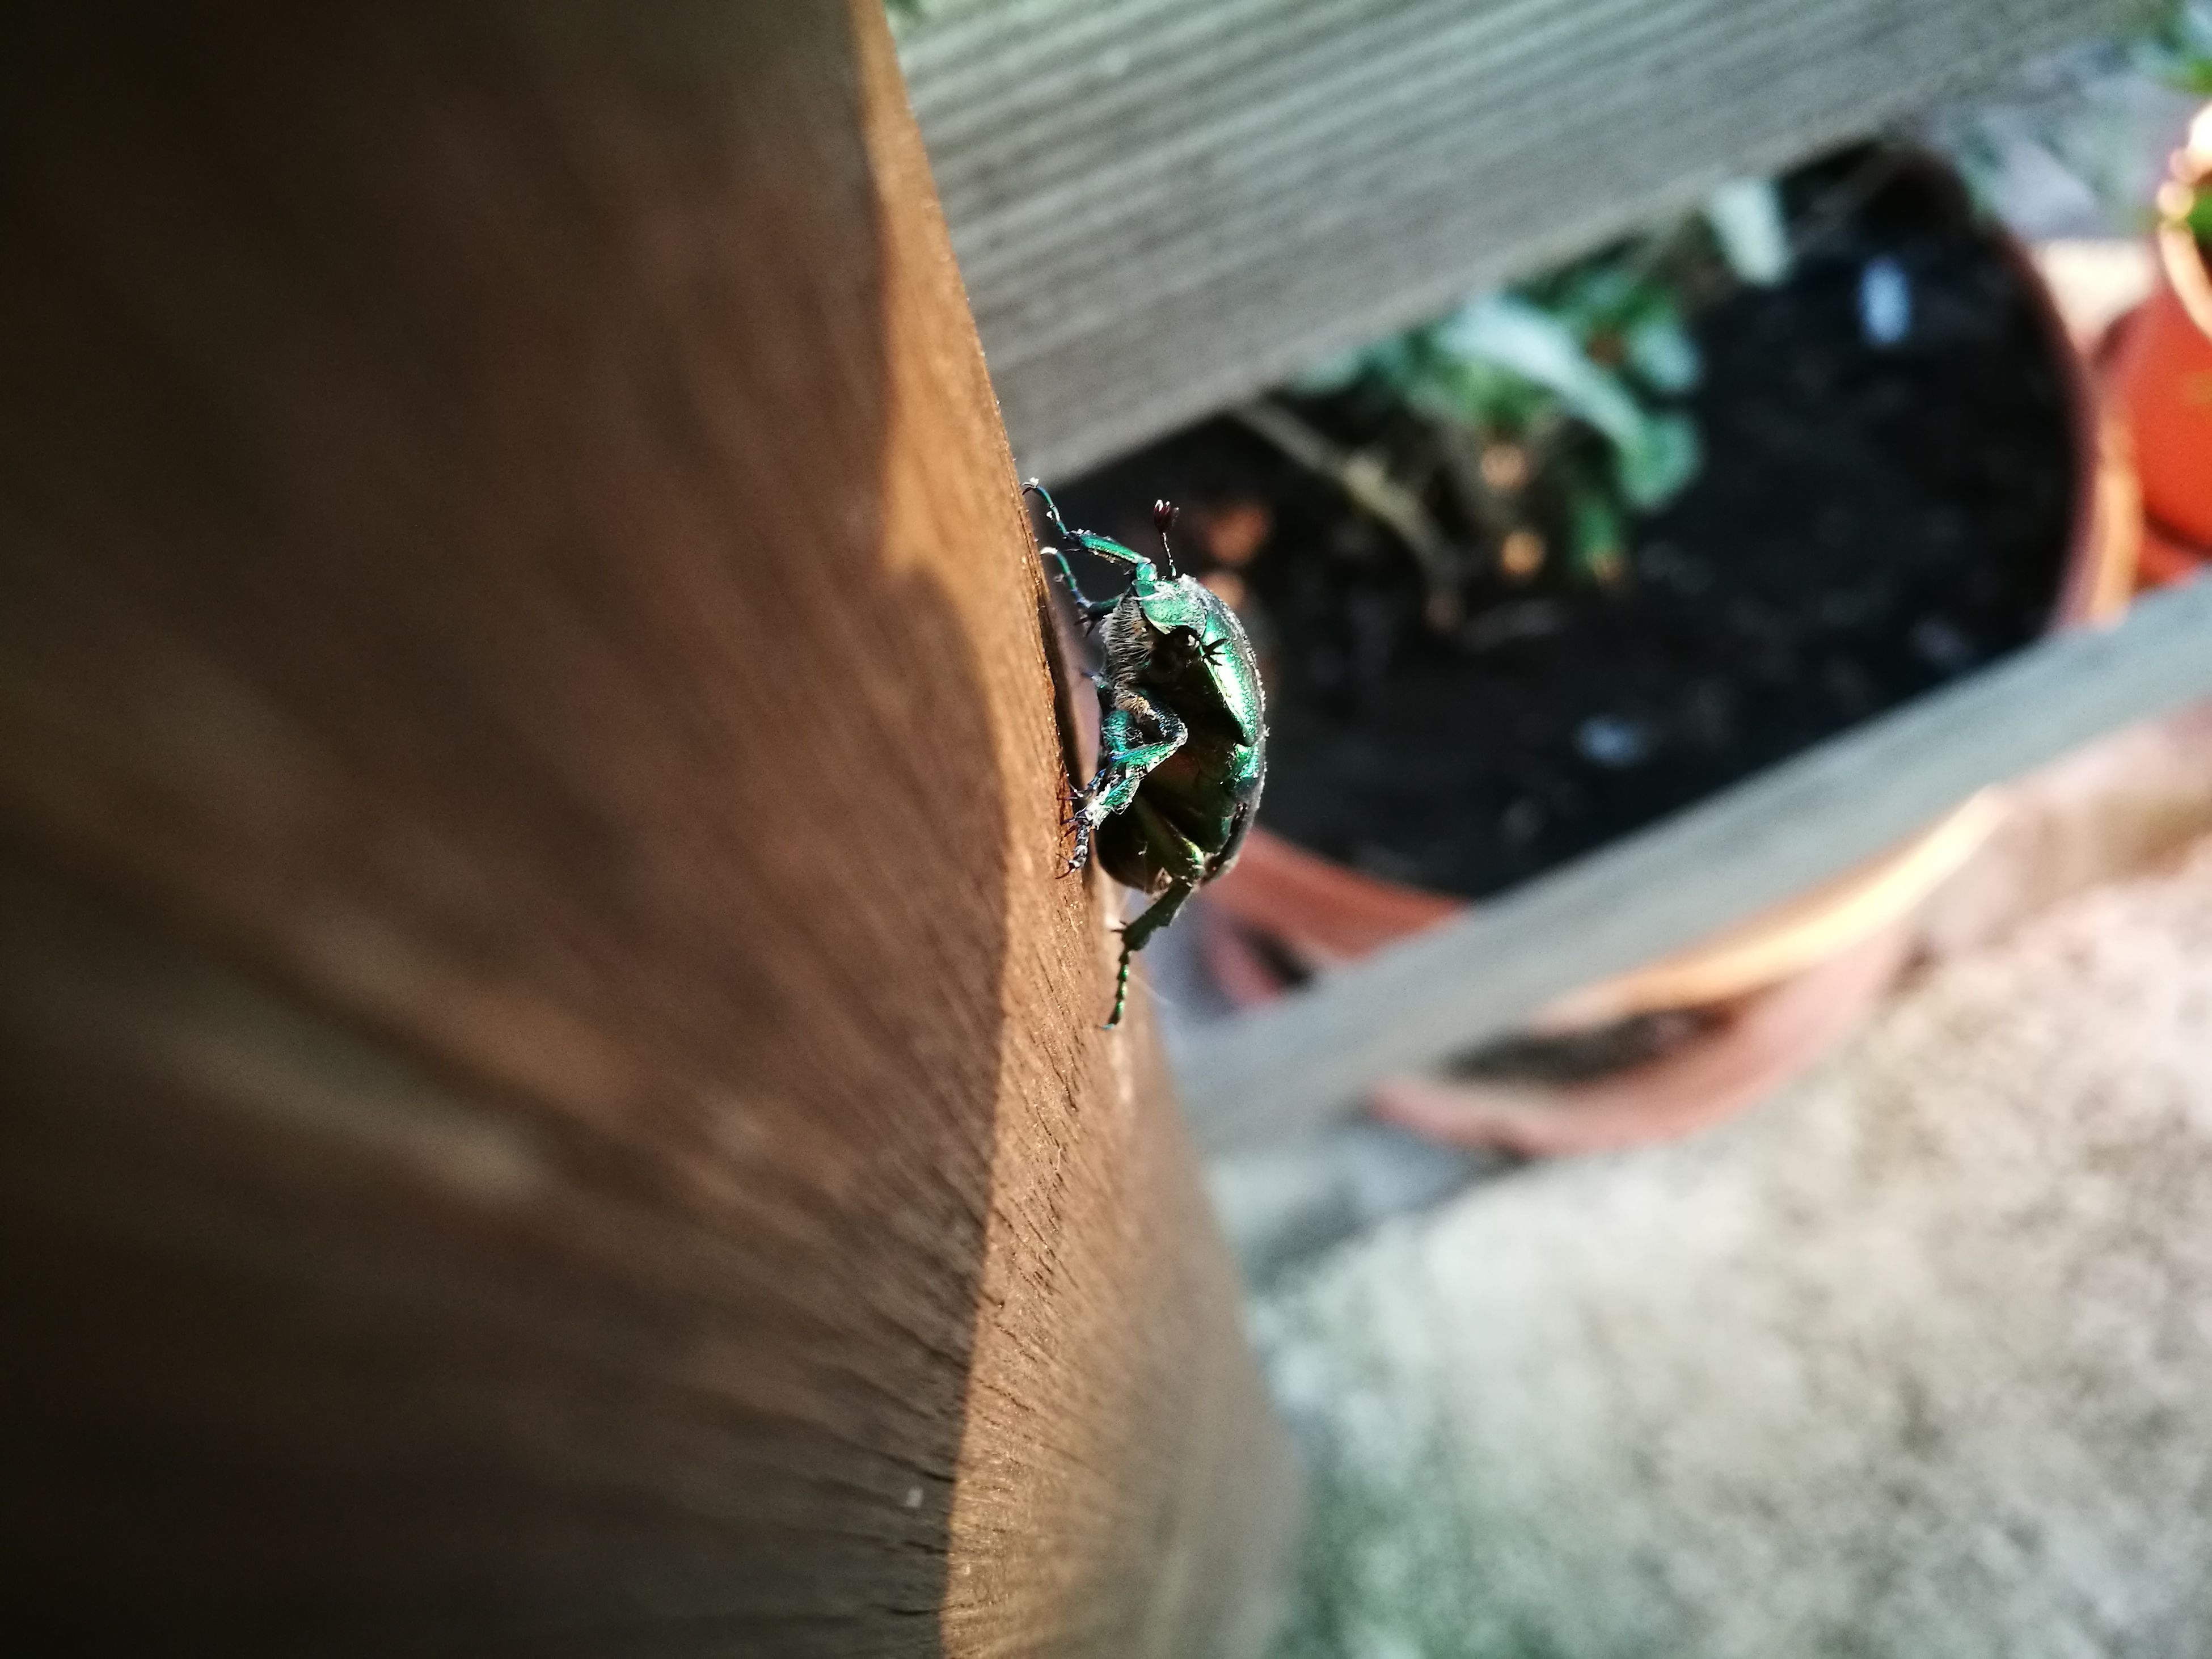 selective focus, insect, animal themes, one animal, concrete, wooden, day, no people, focus on foreground, green